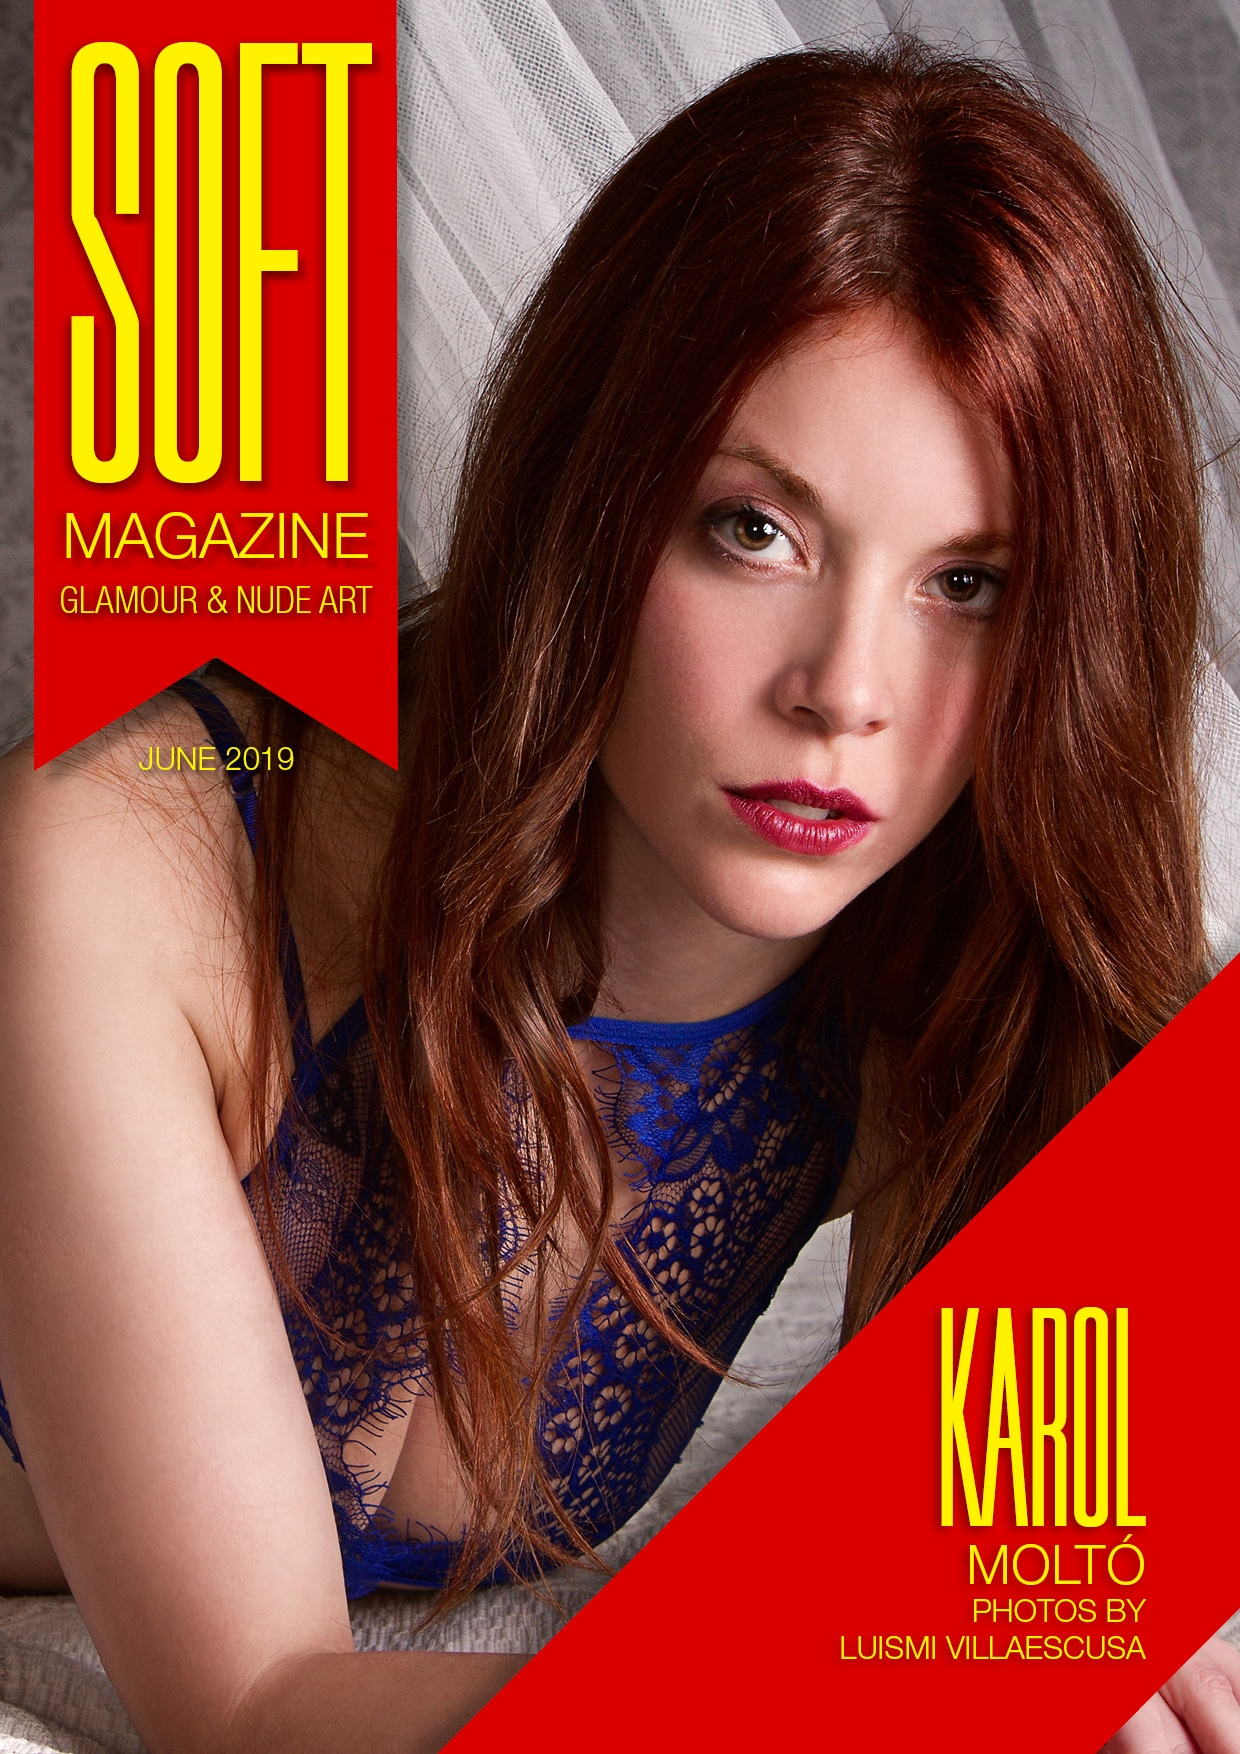 Soft Magazine - June 2019 - Karol Moltó 1